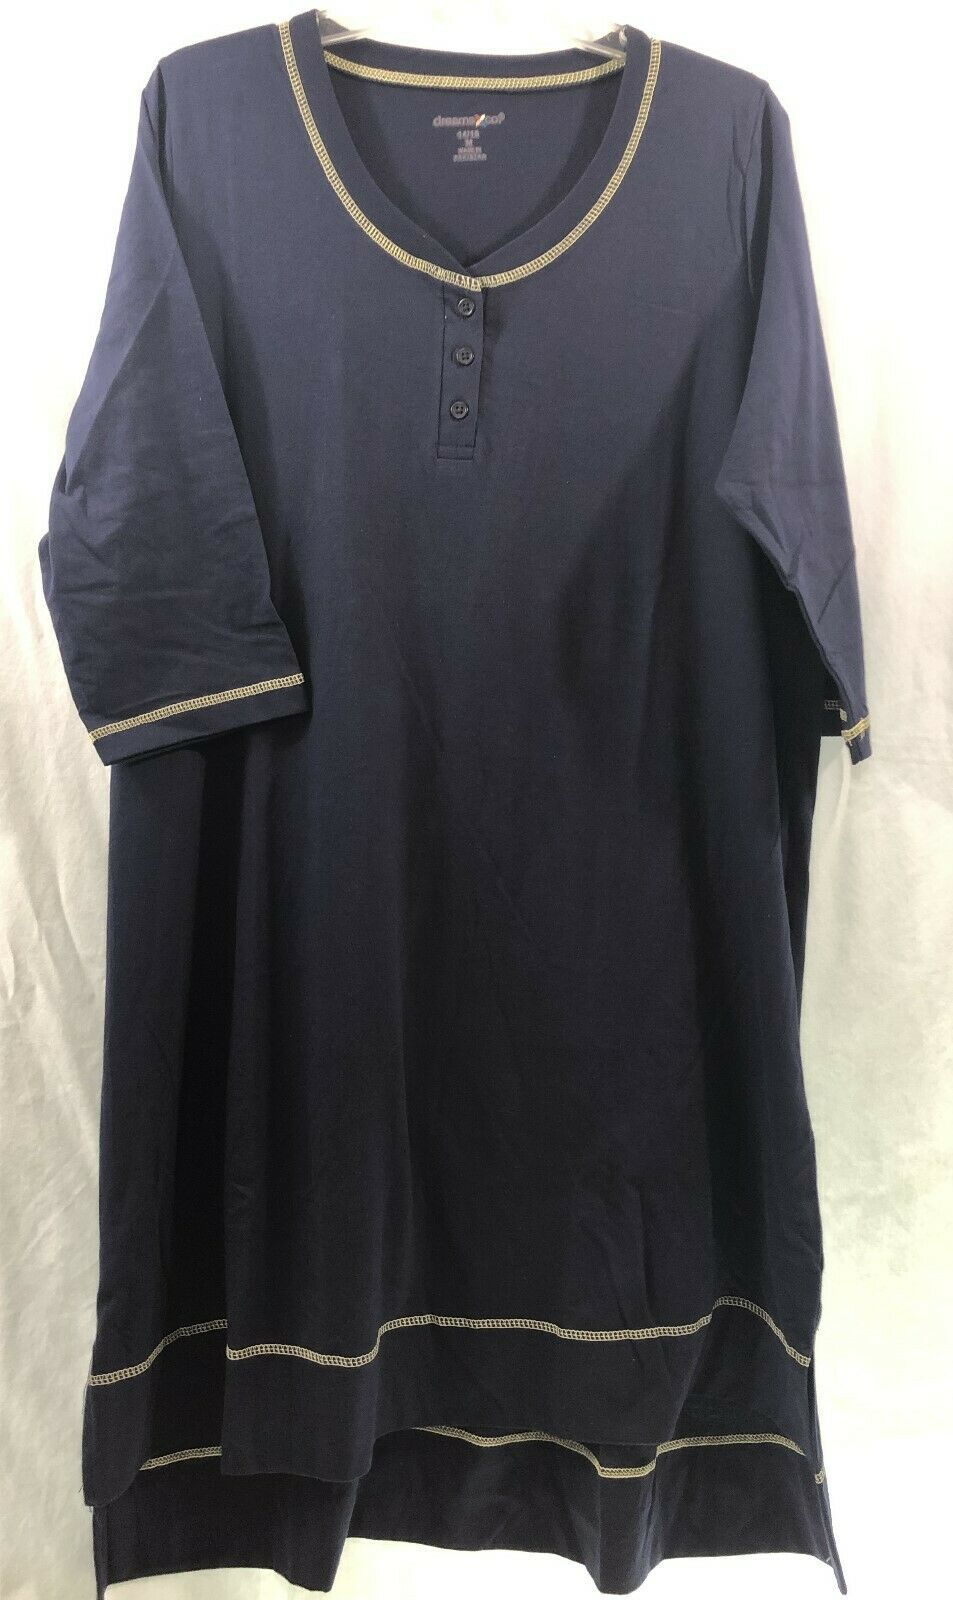 Primary image for Dreams + Co Navy Sleepshirt 3/4 Sleeves Henley Style Neckline High Low Hem